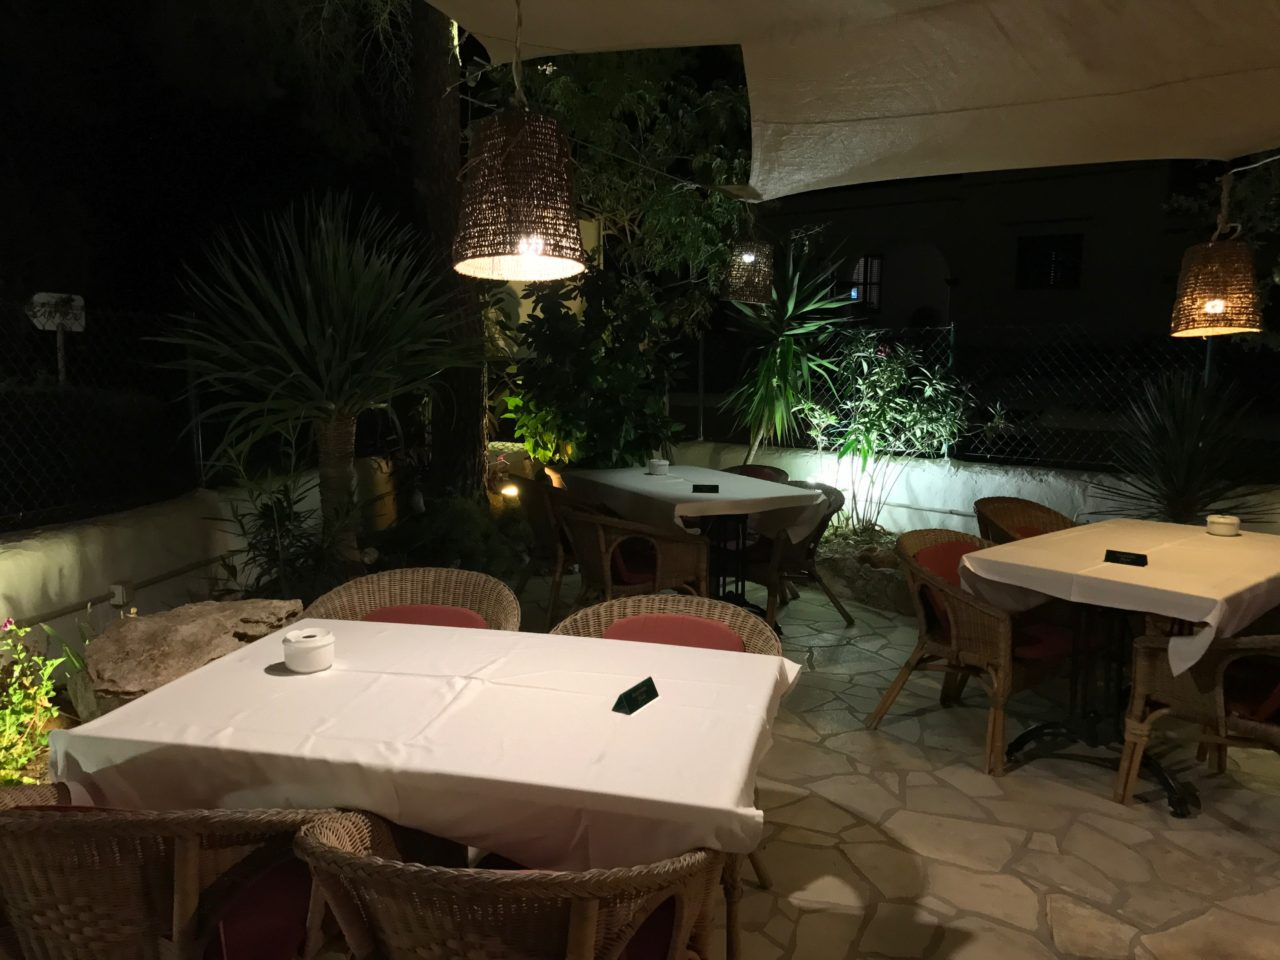 Cozy Restaurant With Tables And Chairs